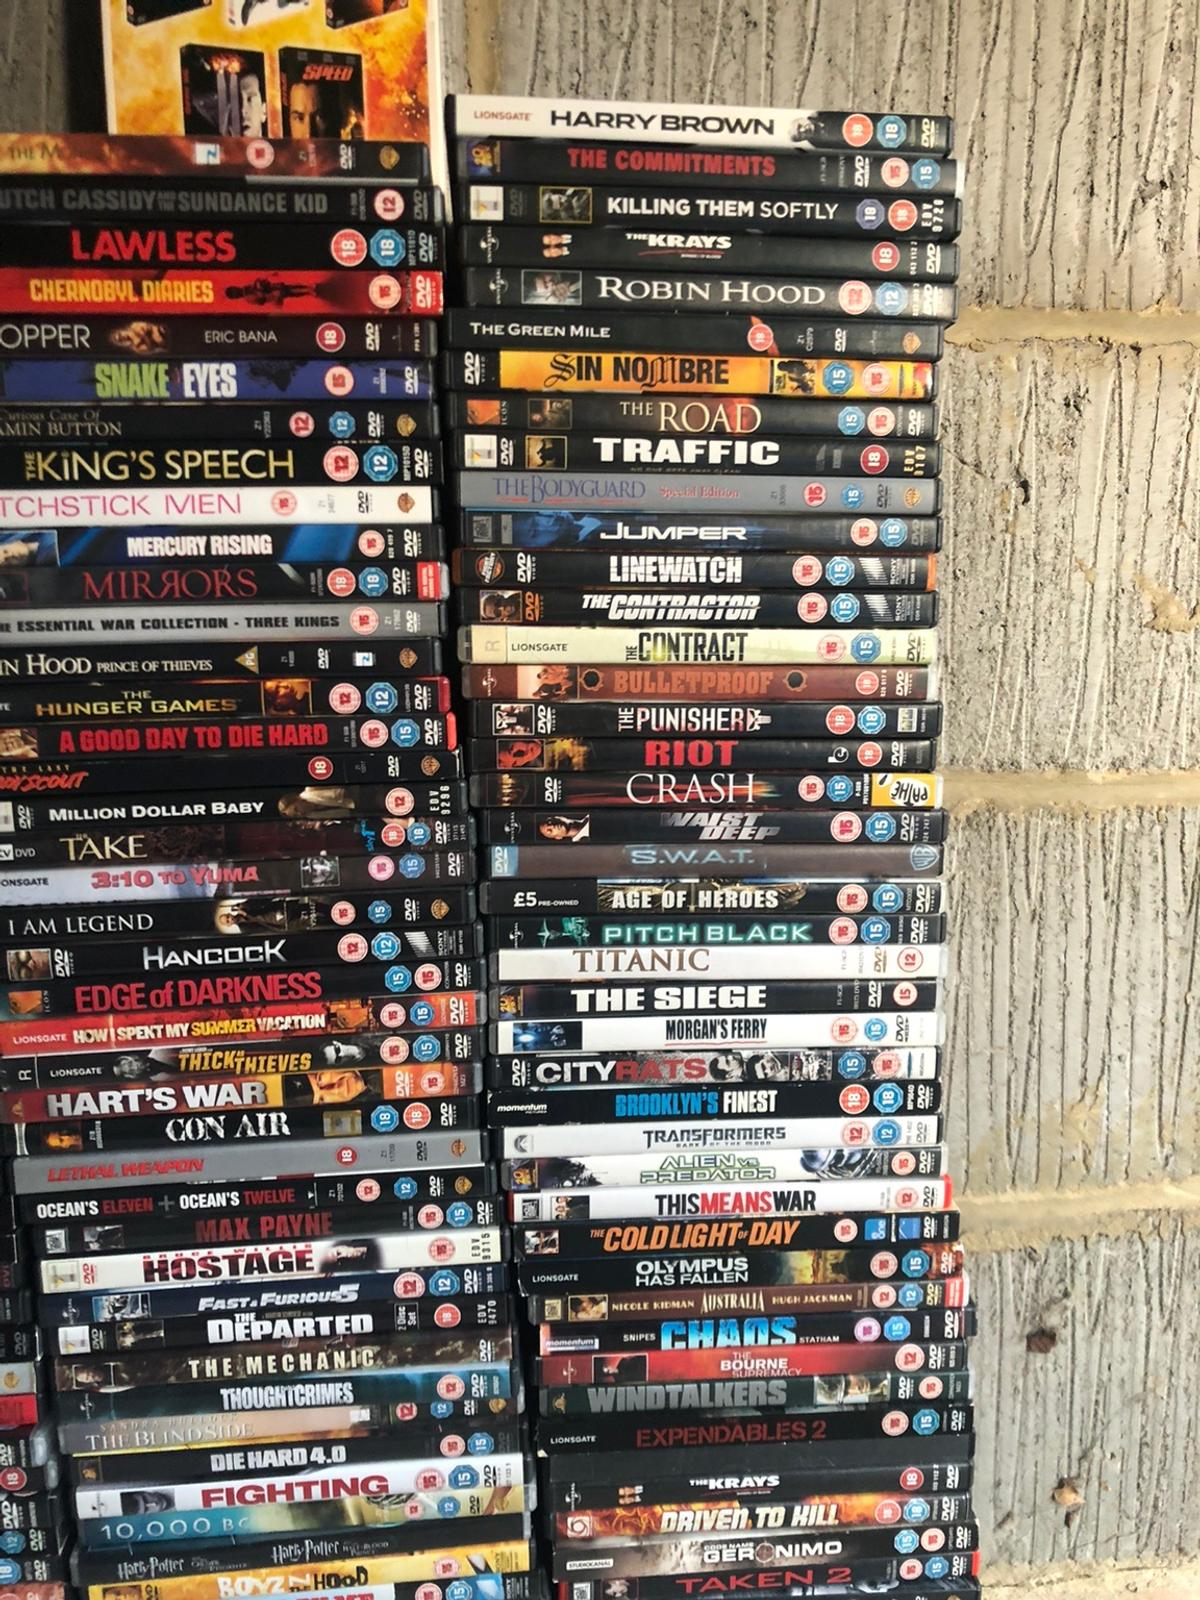 over 70 classic action dvds mumma mia brand new in packet. grab a bargin !! contactless collection all boxes wiped with disinfectant!